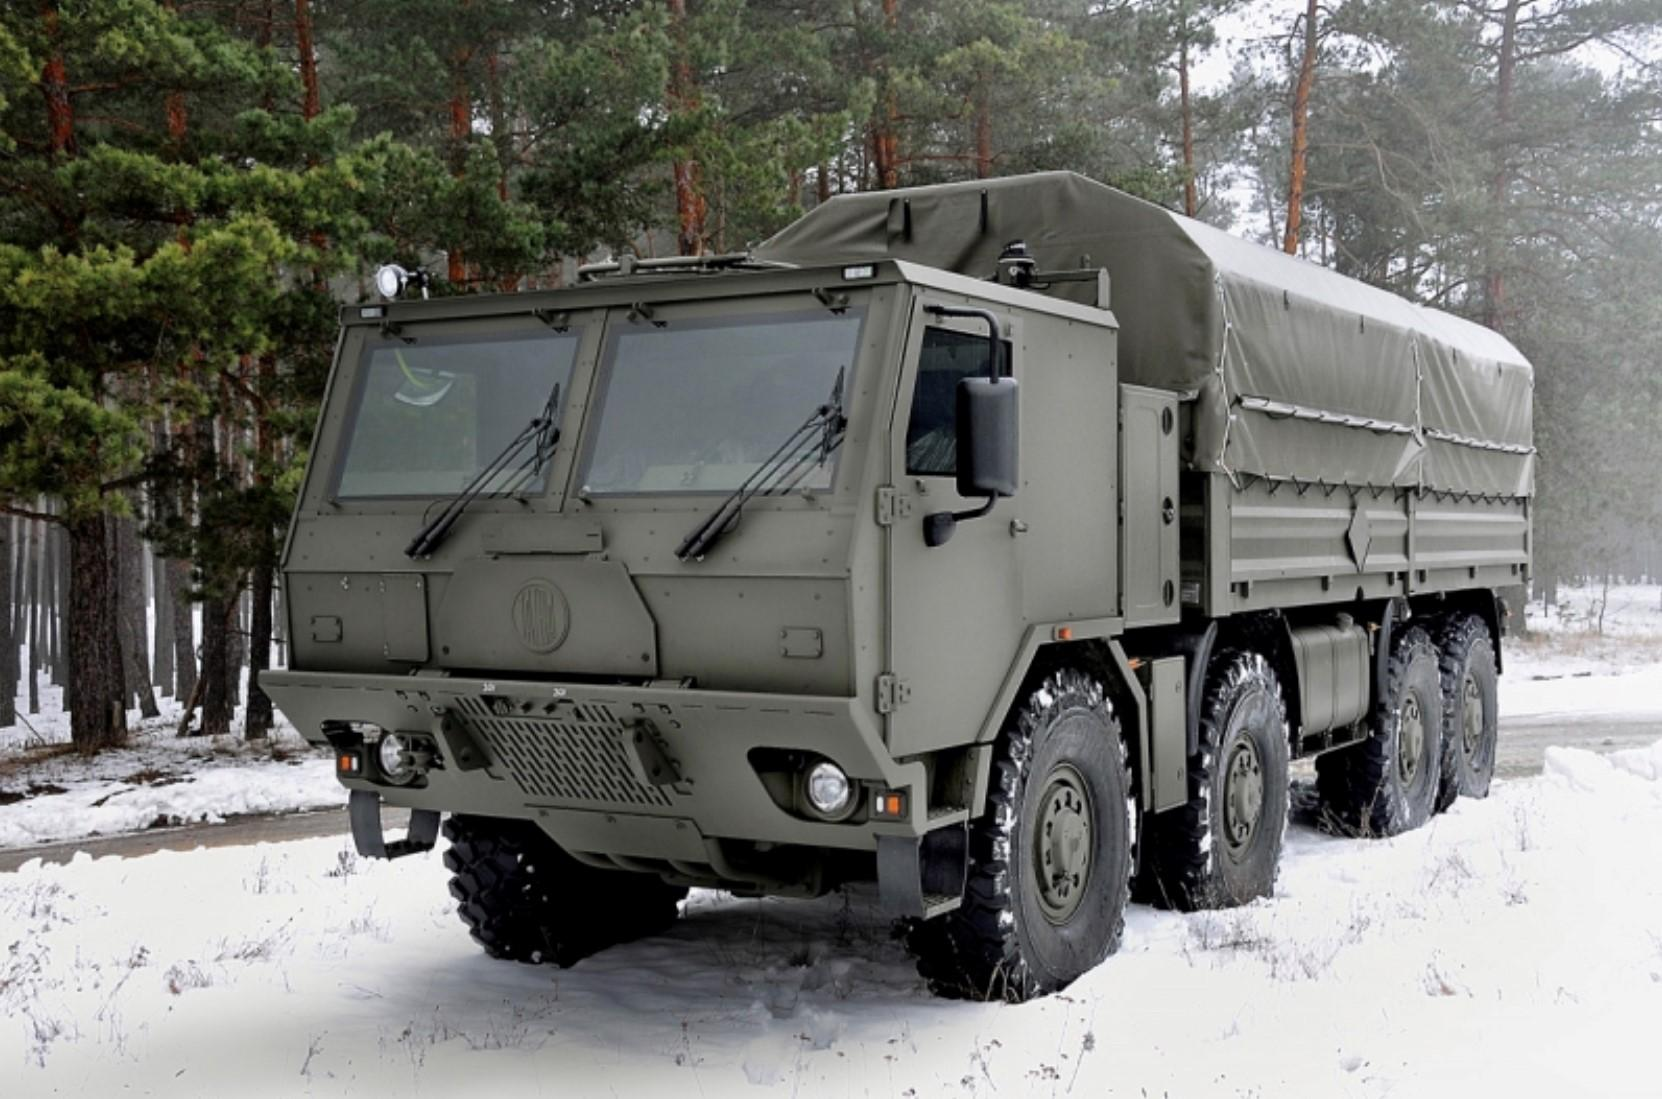 Today Tatra makes some serious trucks, you don't mess with one of these.